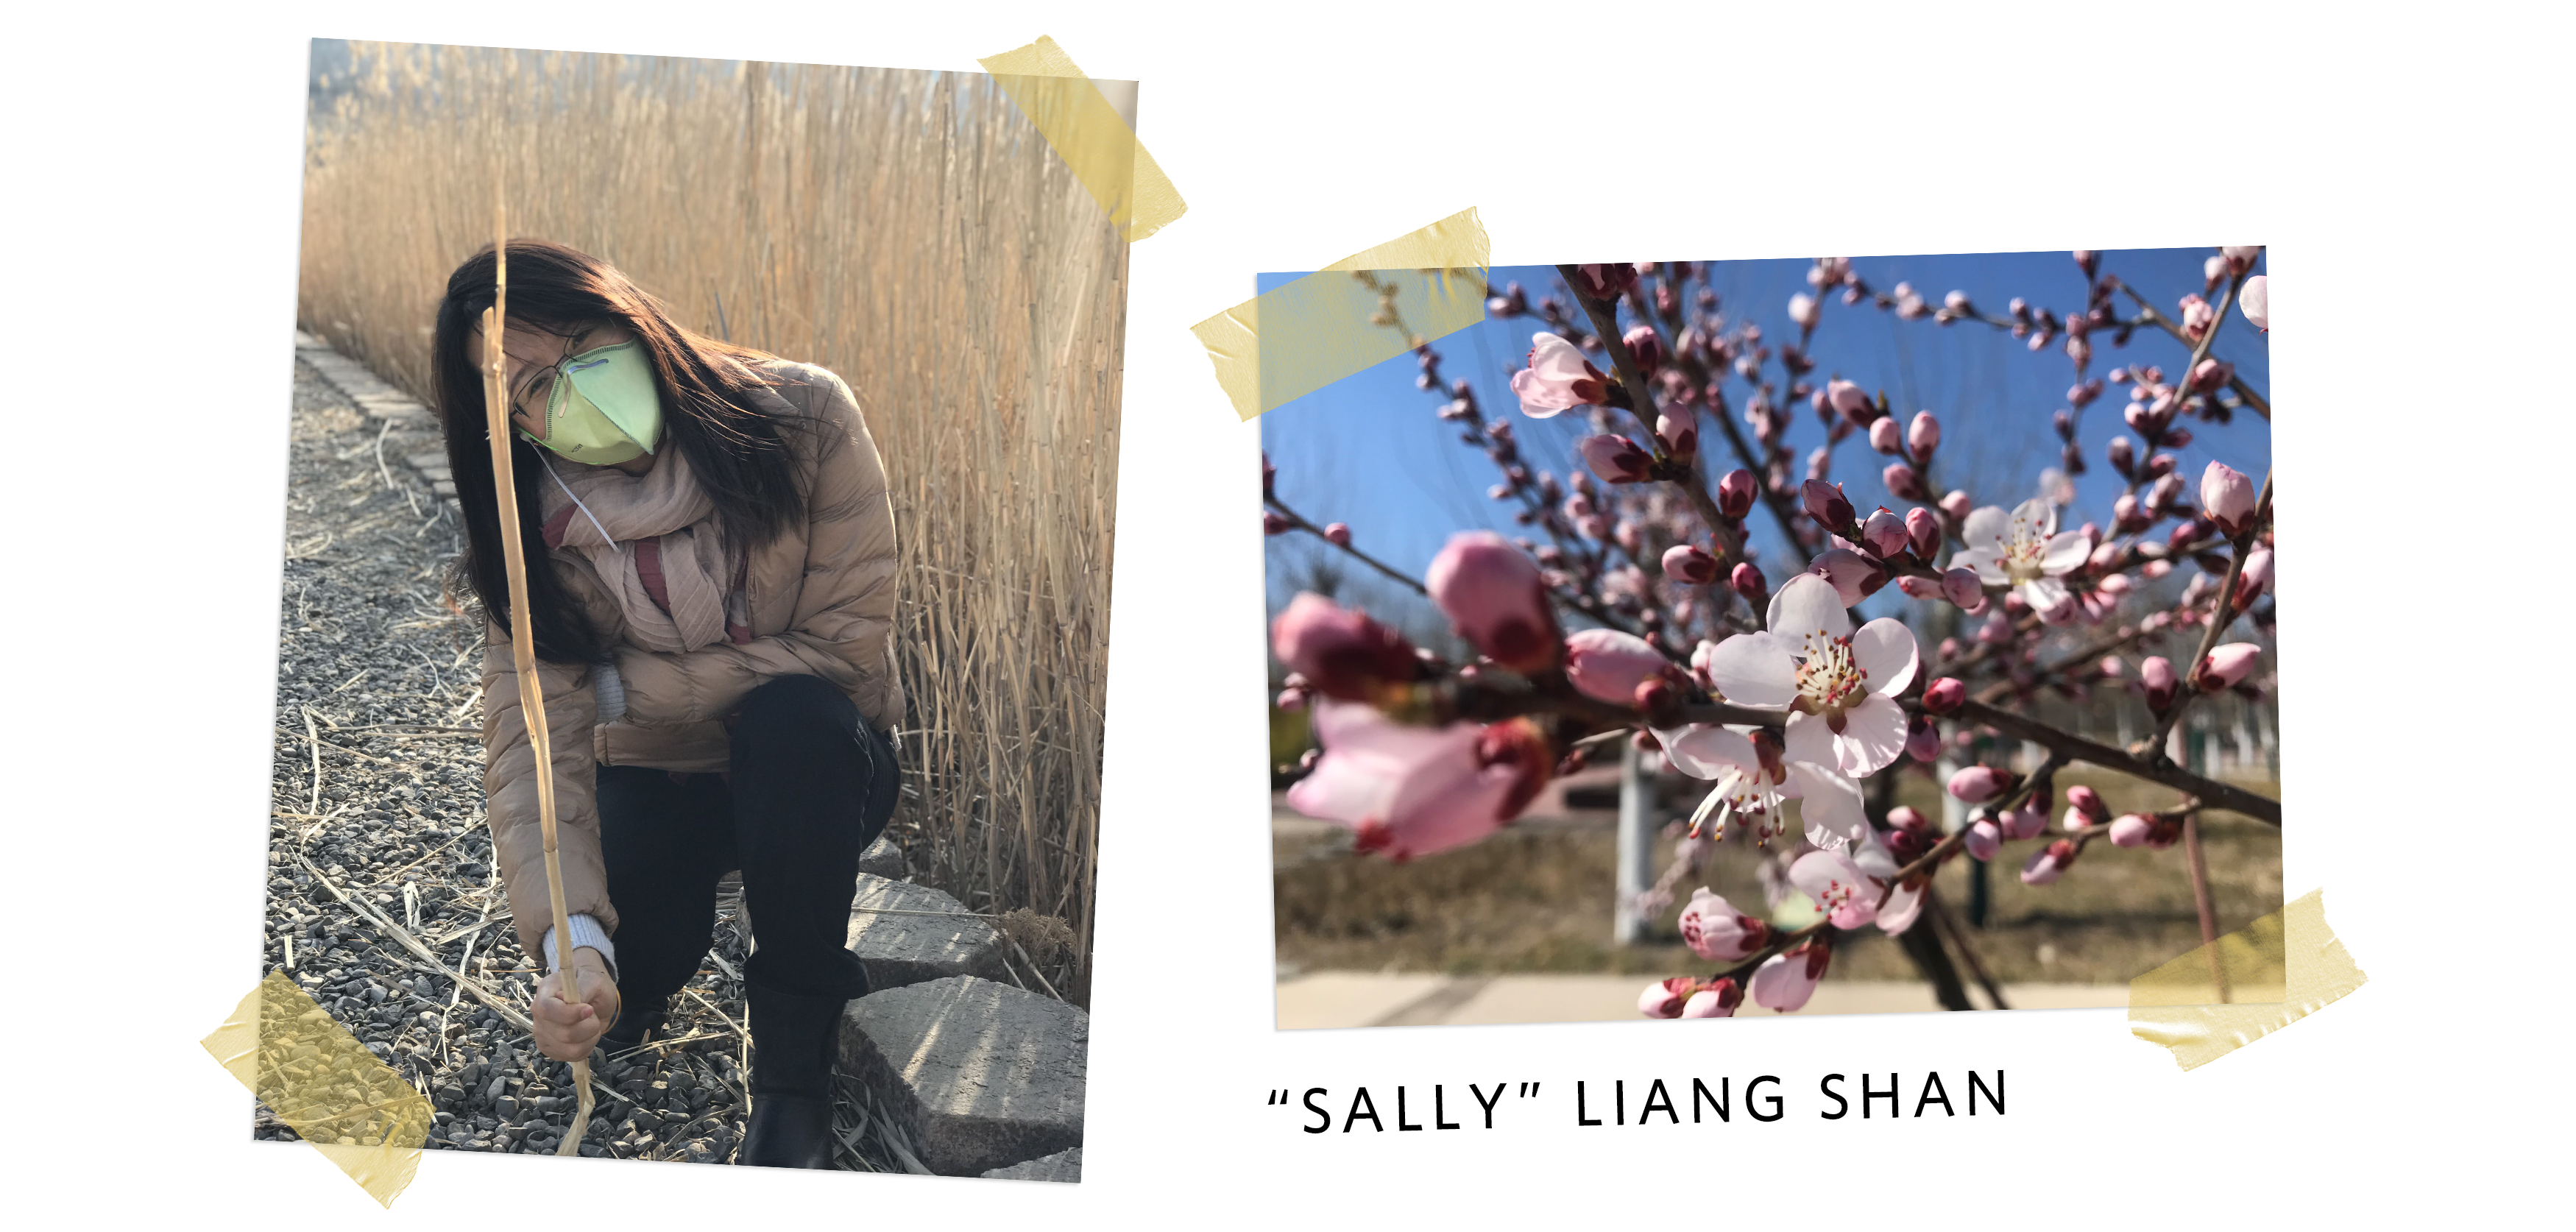 two photos side by side, on the left a woman wearing a mask kneels in a park, on the right is a close up of a cherry blossom branch in bloom. Underneath, text that says